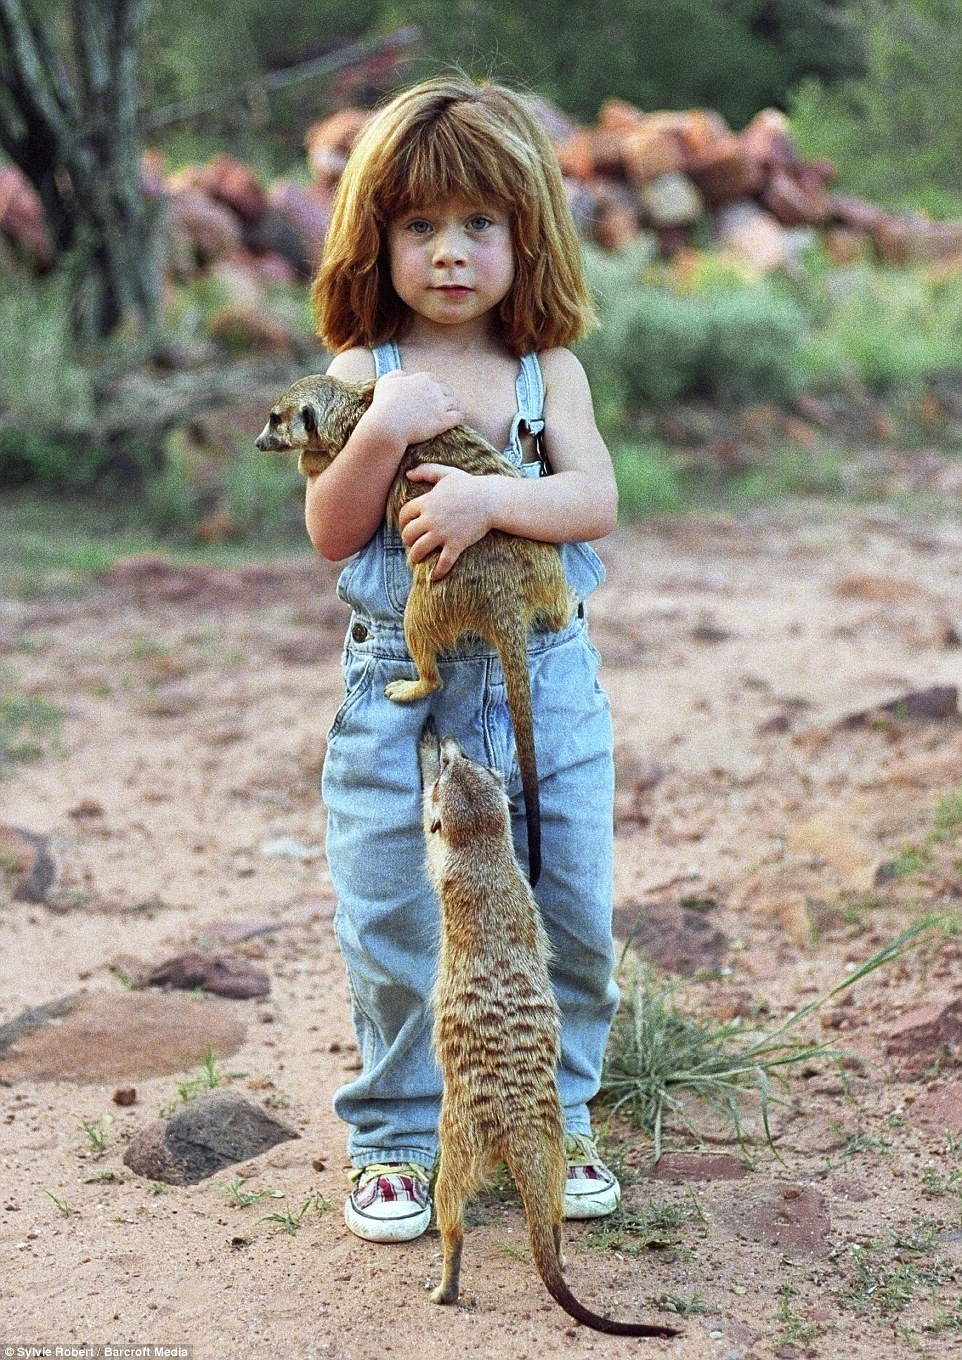 The young girl playing with two meerkats at the age of six in a magical image taken in Namibia